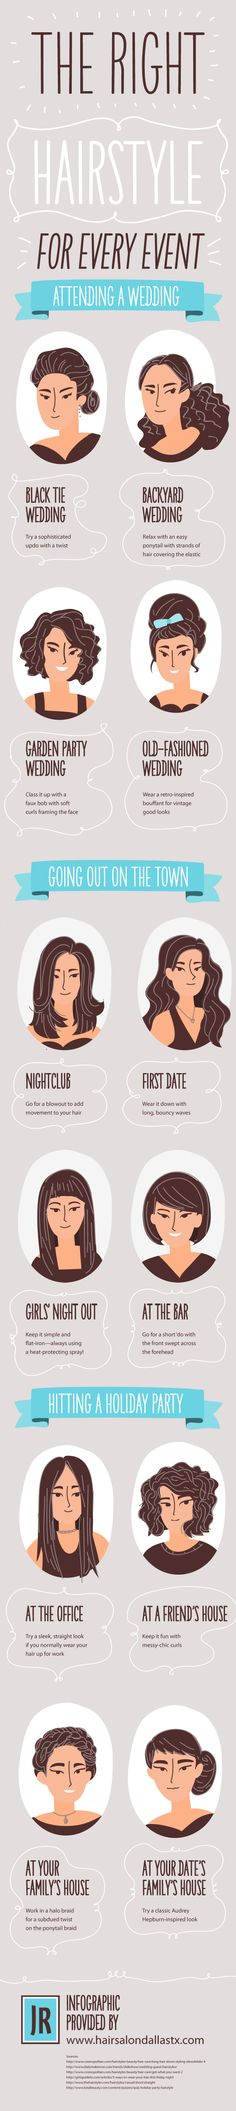 Add some sass to a first date look by styling the hair with long, bouncy waves. Check out this infographic from Johnny Rodriguez the Salon in Dallas t